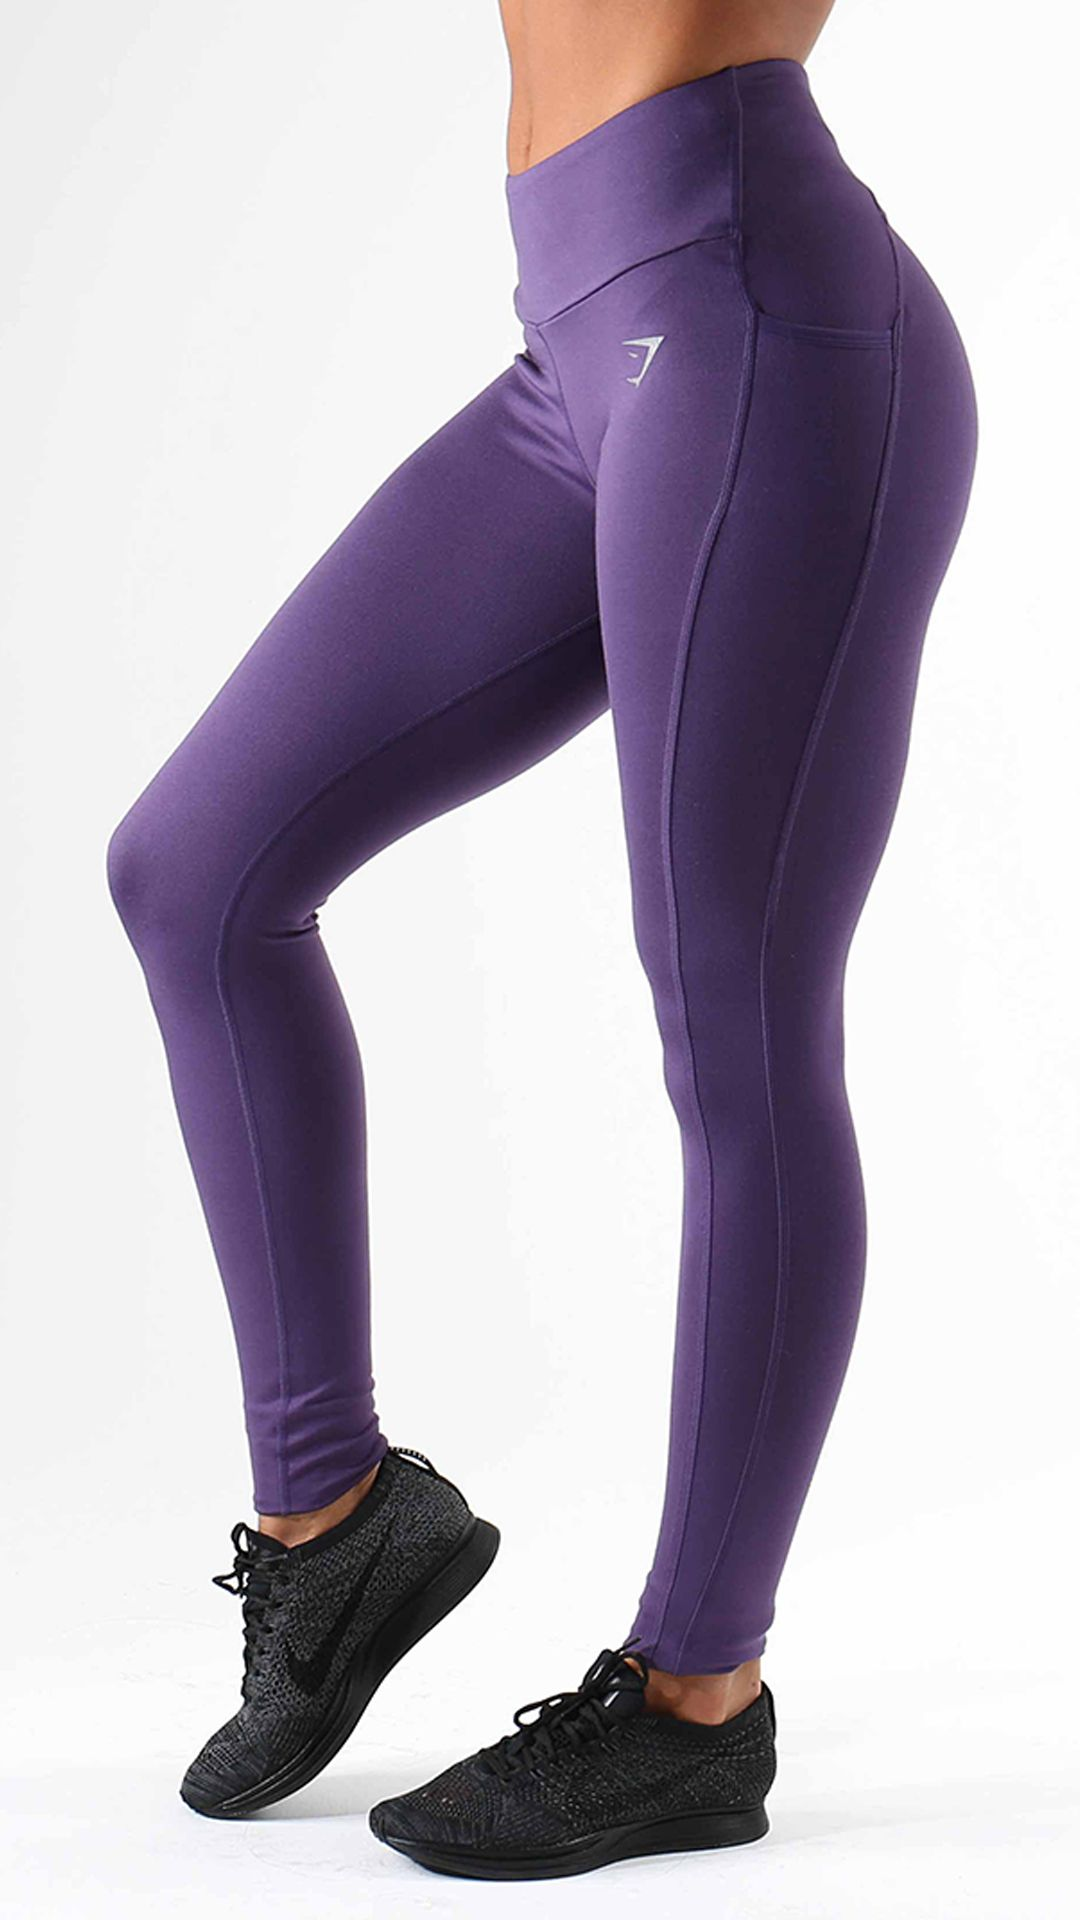 f3308e2f7c9cb The Sculpture Leggings in rich purple, are high-waisted and flexible exercise  leggings, with Gymshark DRY technology for a cool, comfortable workout.